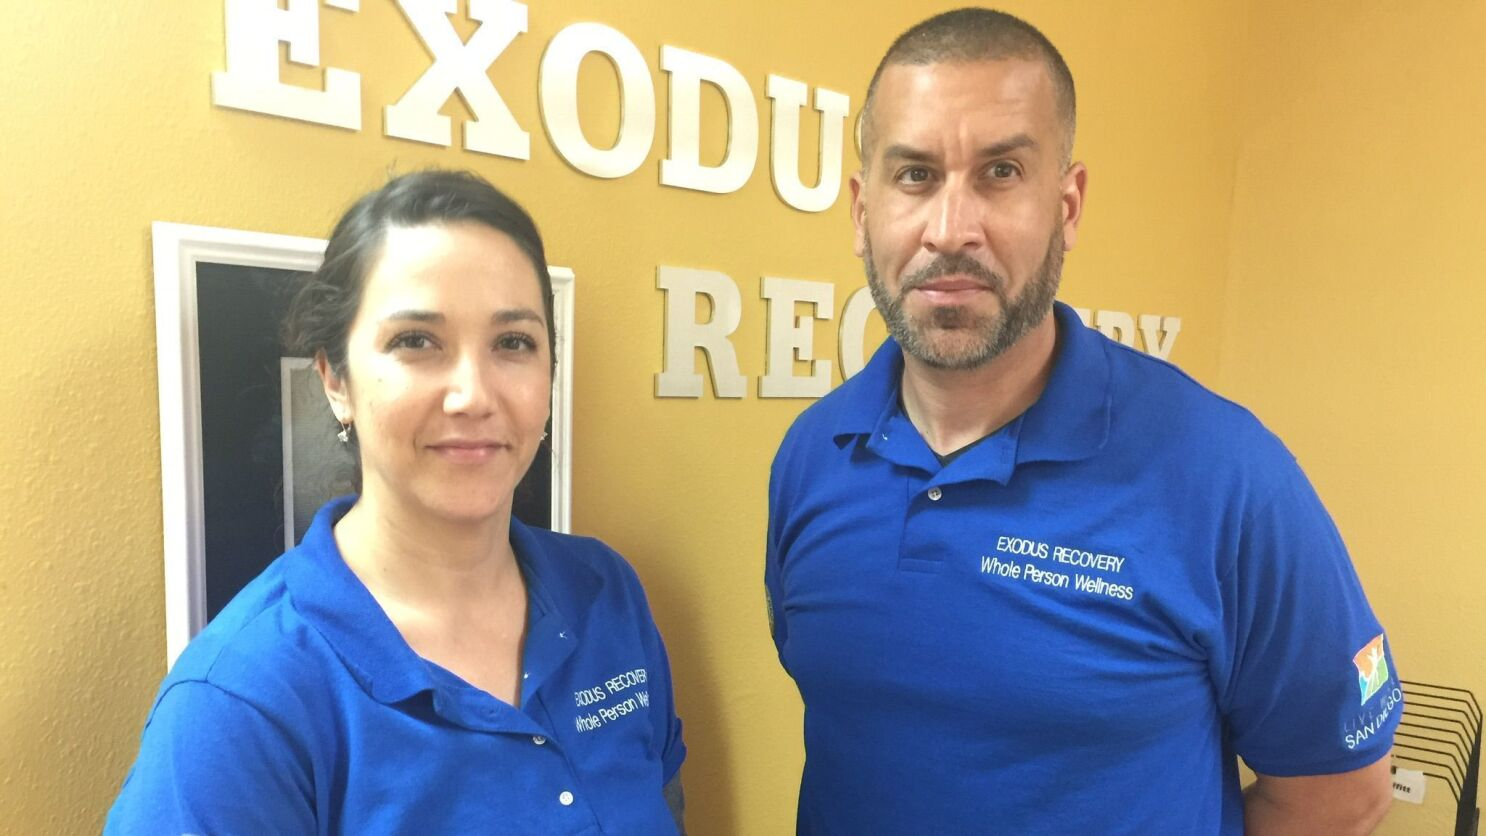 Best Exodus Providers 2020 Program aims to saves money by paying homeless healthcare   The